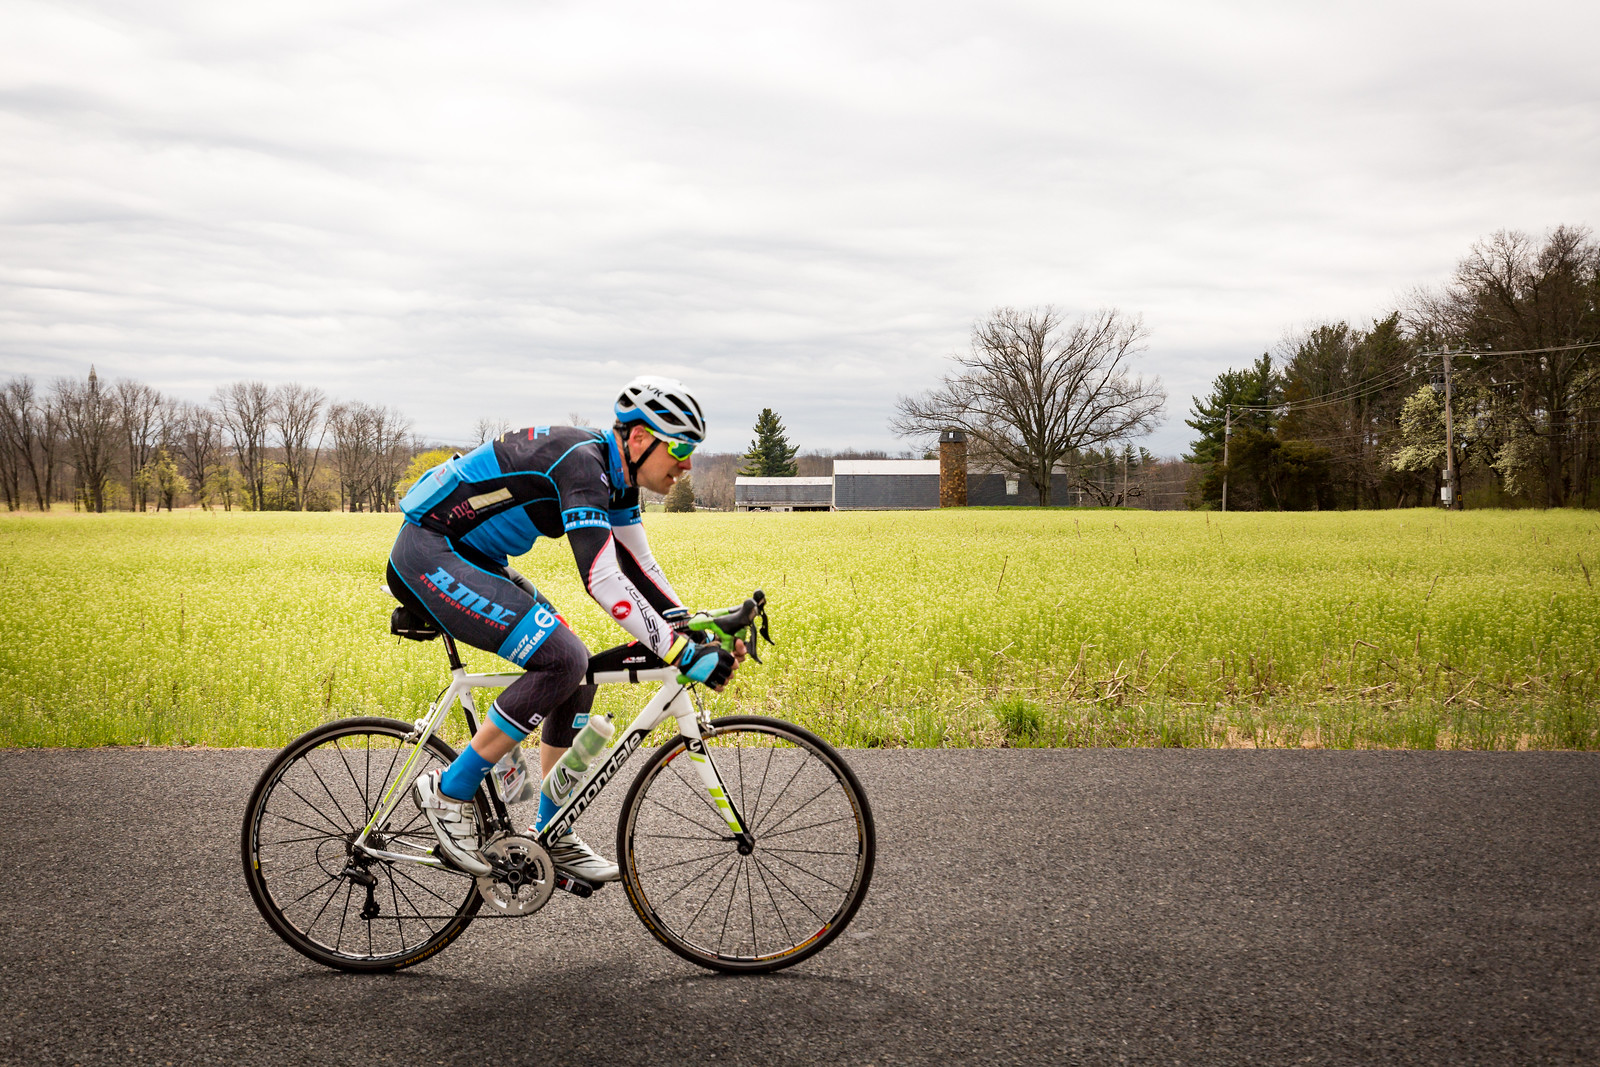 The Total Fools and Fools Classic routes encompass the Bucks County experience: gravel roads, covered bridges, fallow farm fields, and punchy climbs.